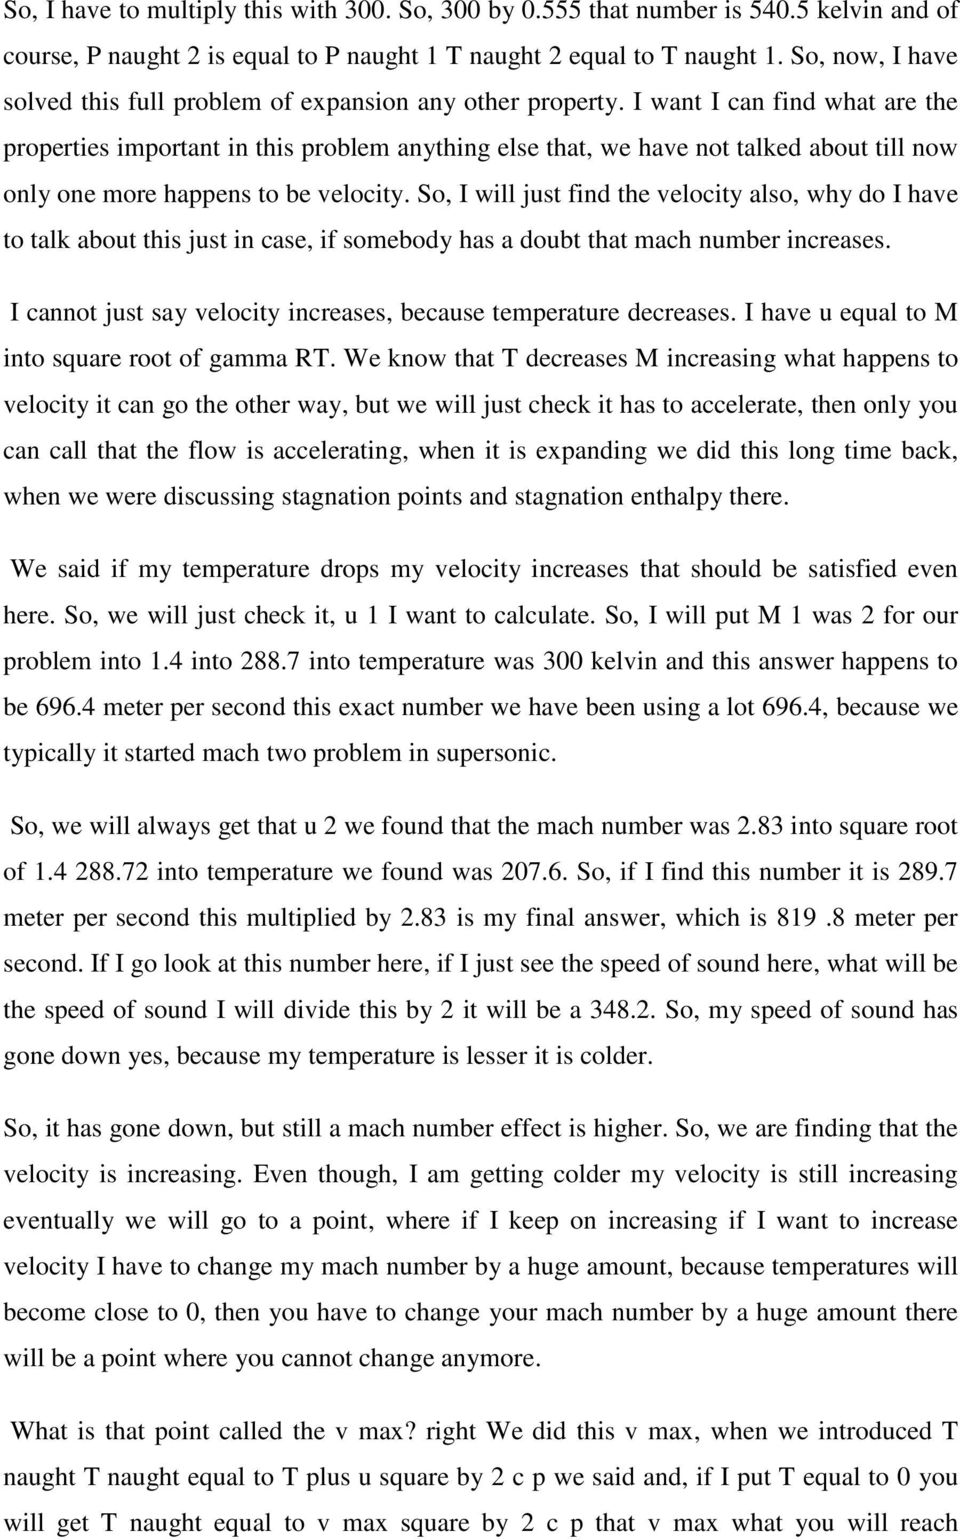 I want I can find what are the properties important in this problem anything else that, we have not talked about till now only one more happens to be velocity.